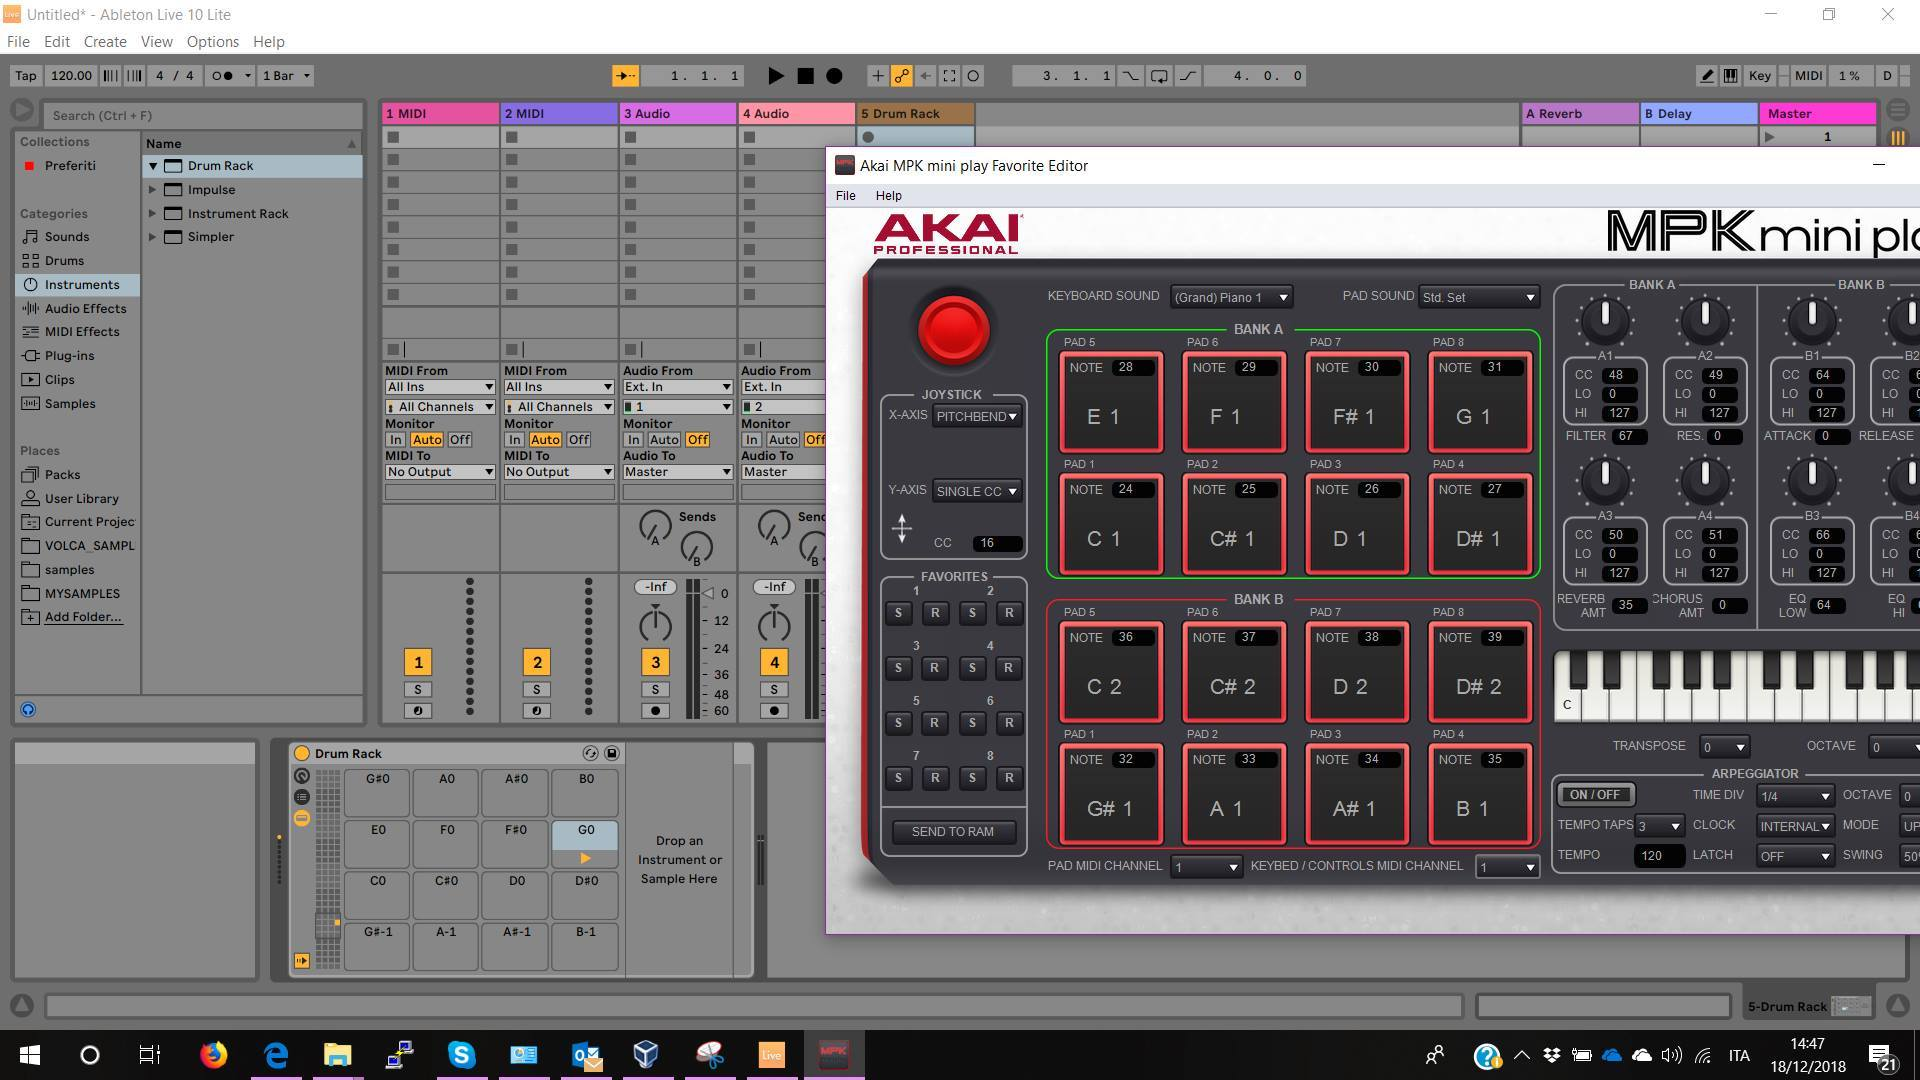 Different notes using Akai MPK Mini Play - Ableton Forum